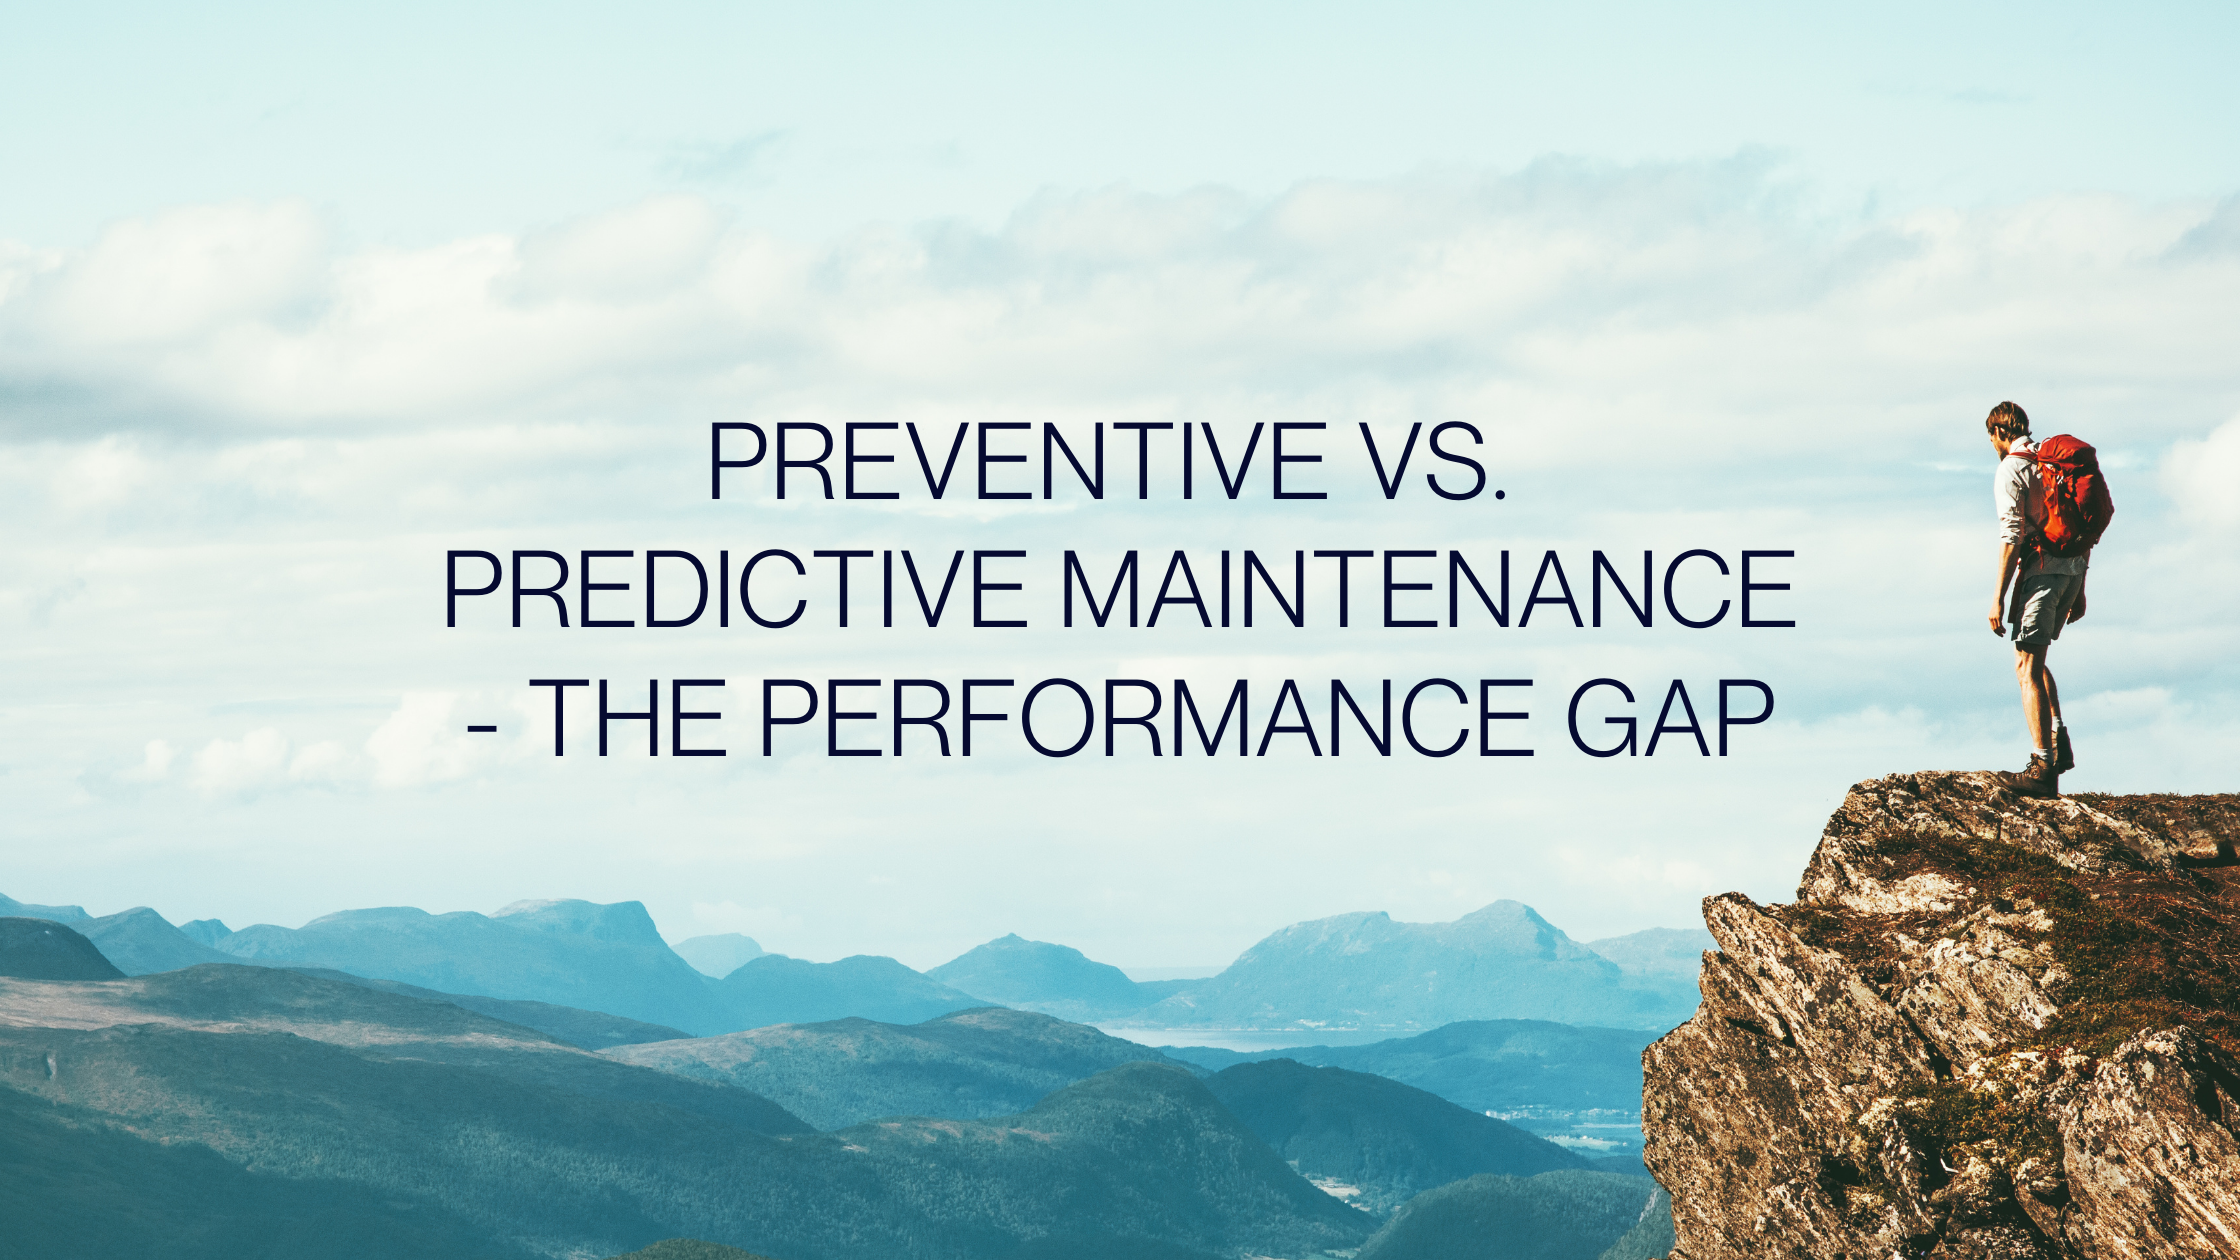 Preventive vs Predictive Maintenance - The Performance Gap